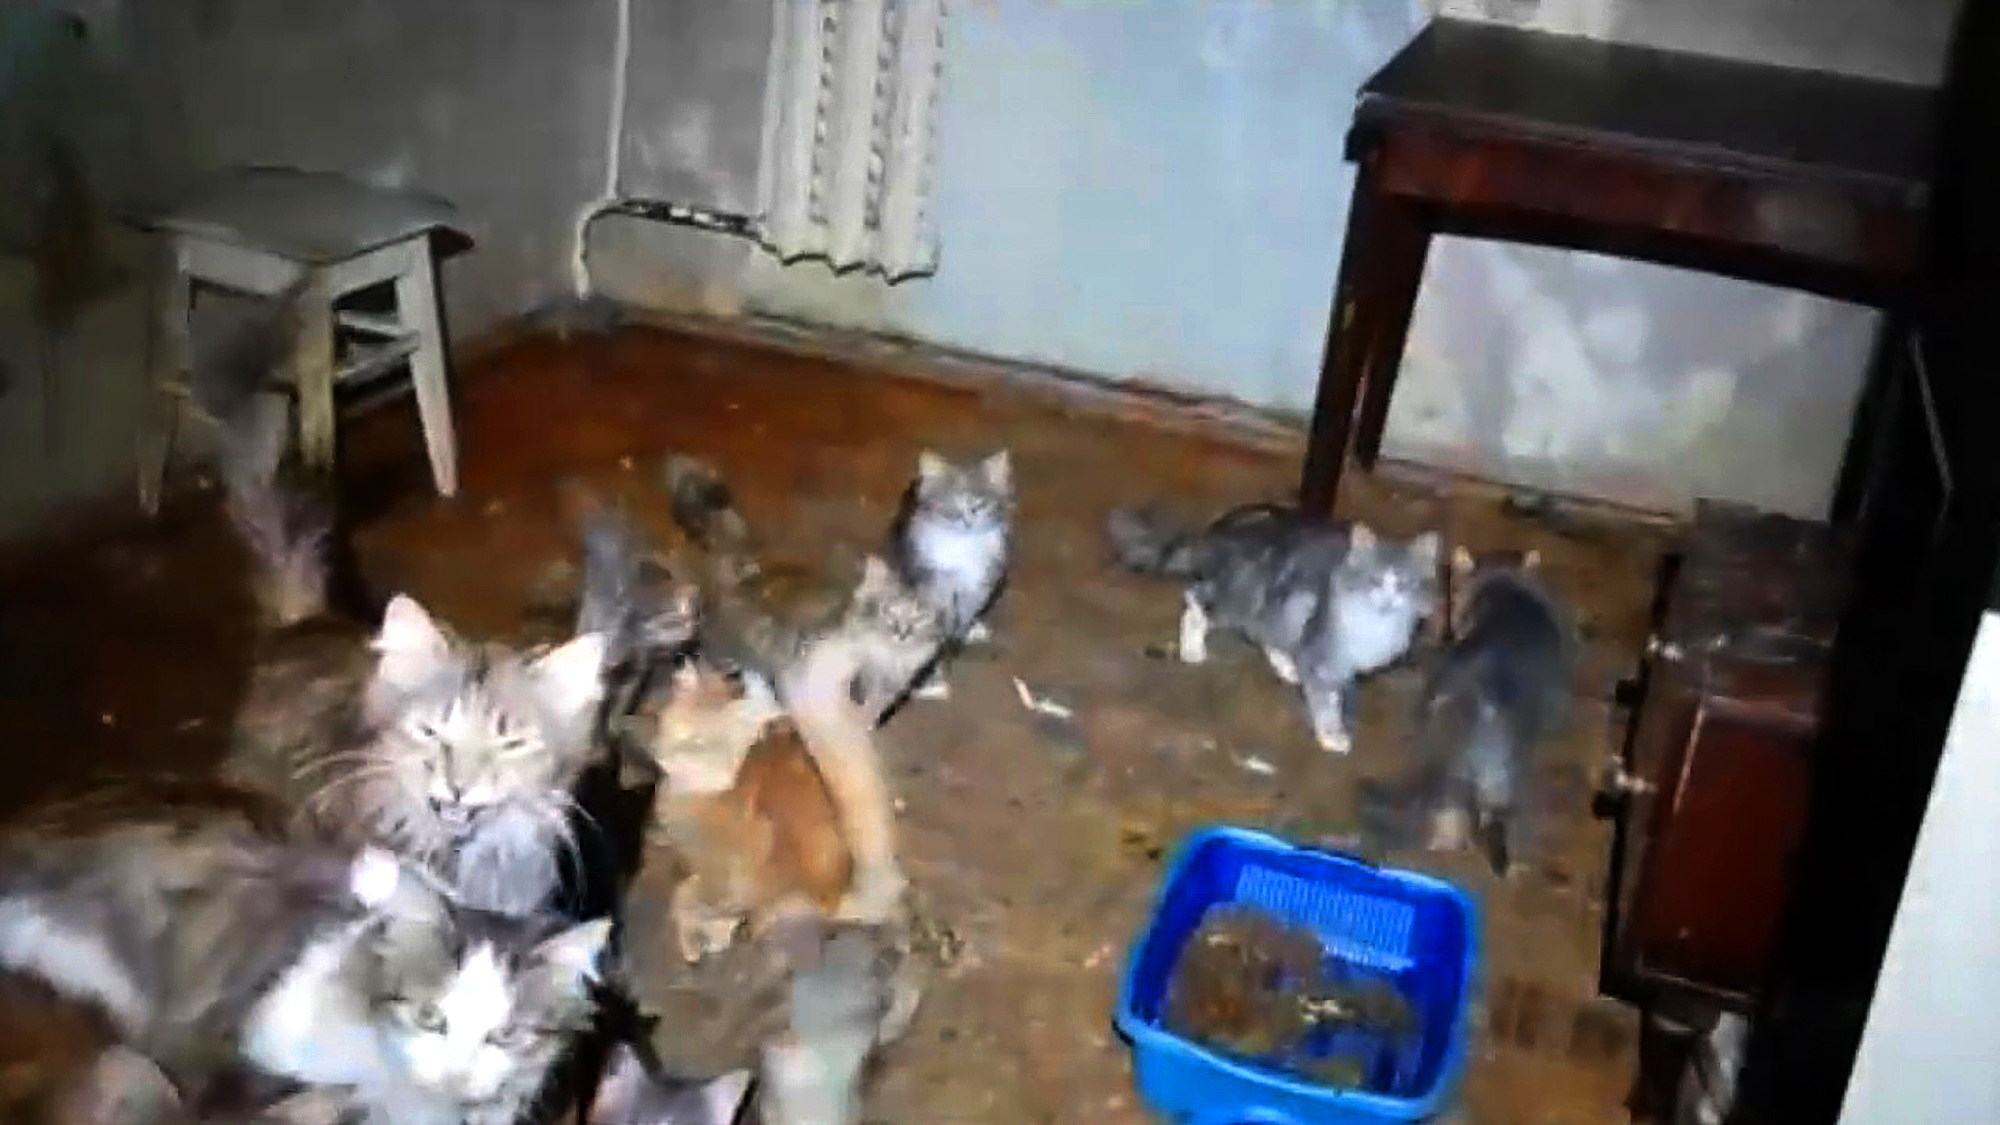 VIDEO: Get Me-Ow-Ta Here: Police Bid To Free 50 Cats Locked In Woman's Tiny Apartment